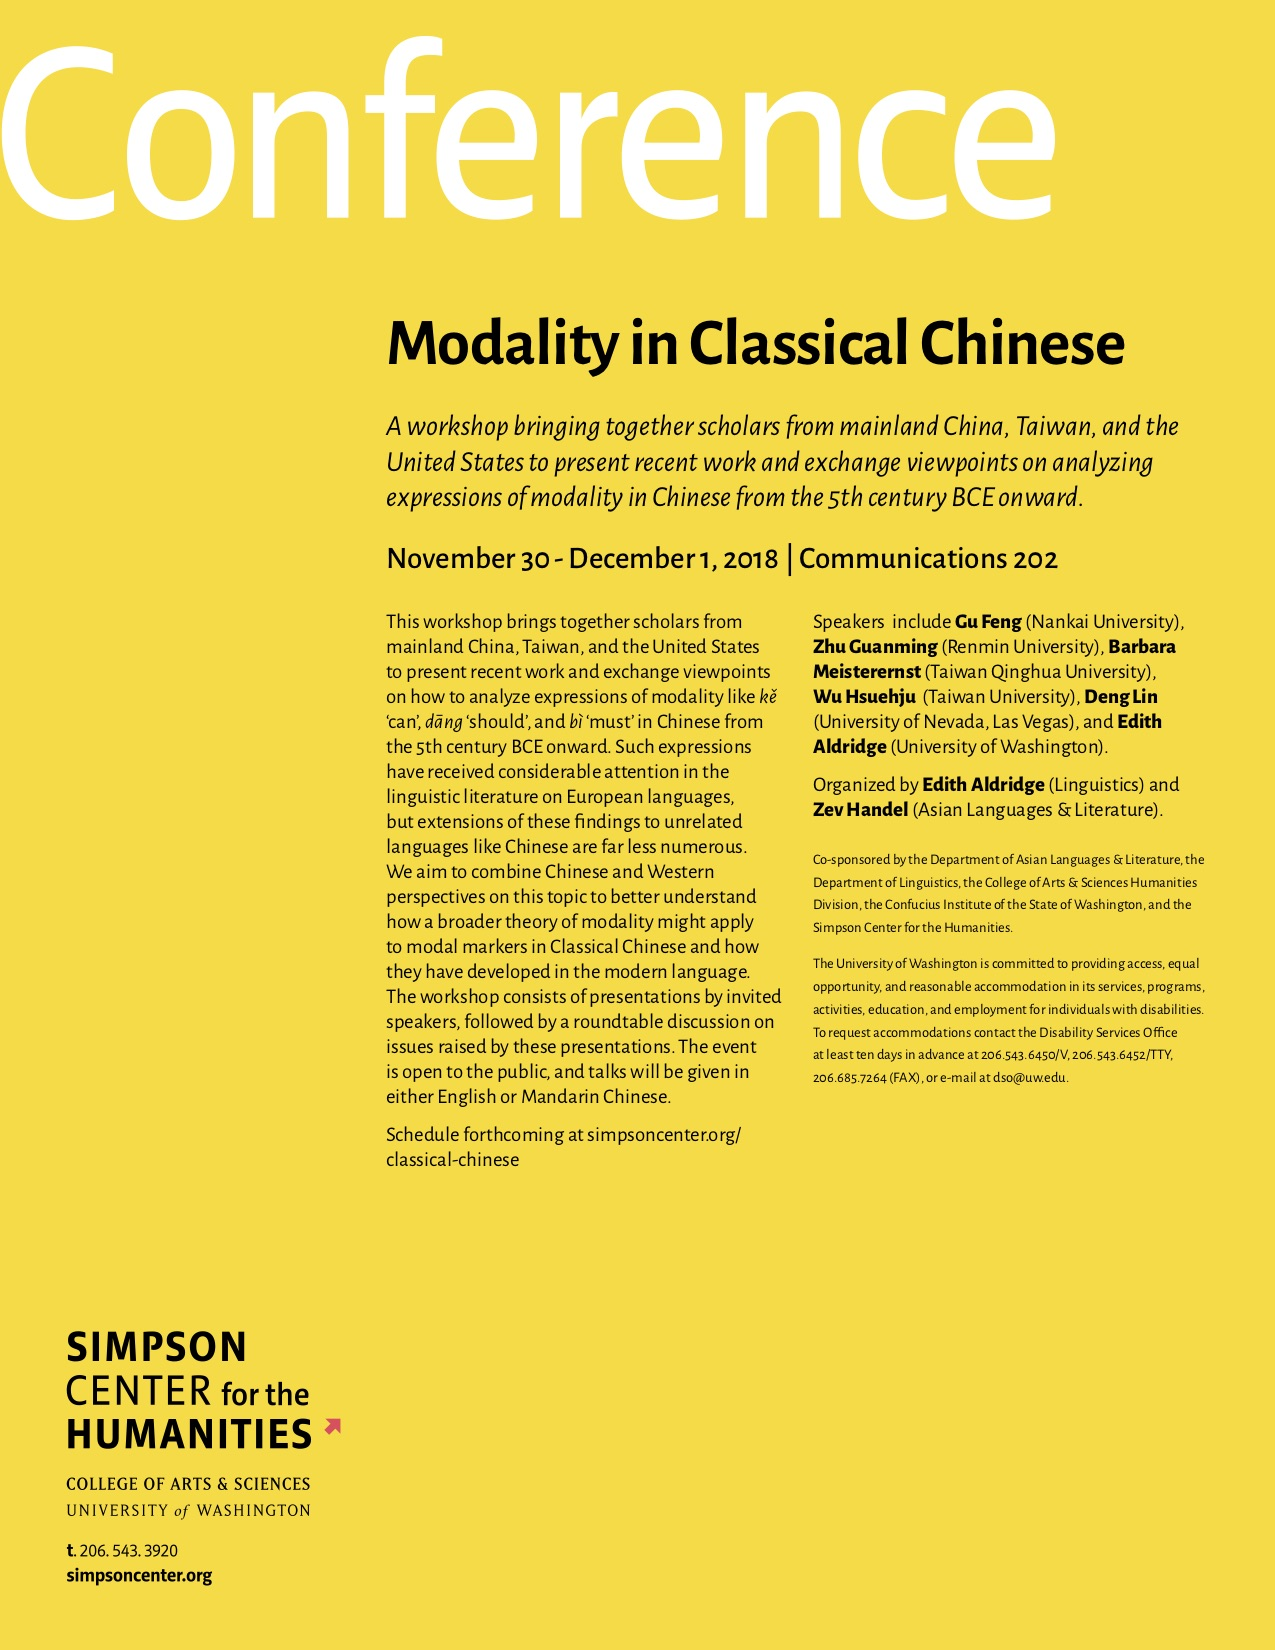 Modality in Classical Chinese poster